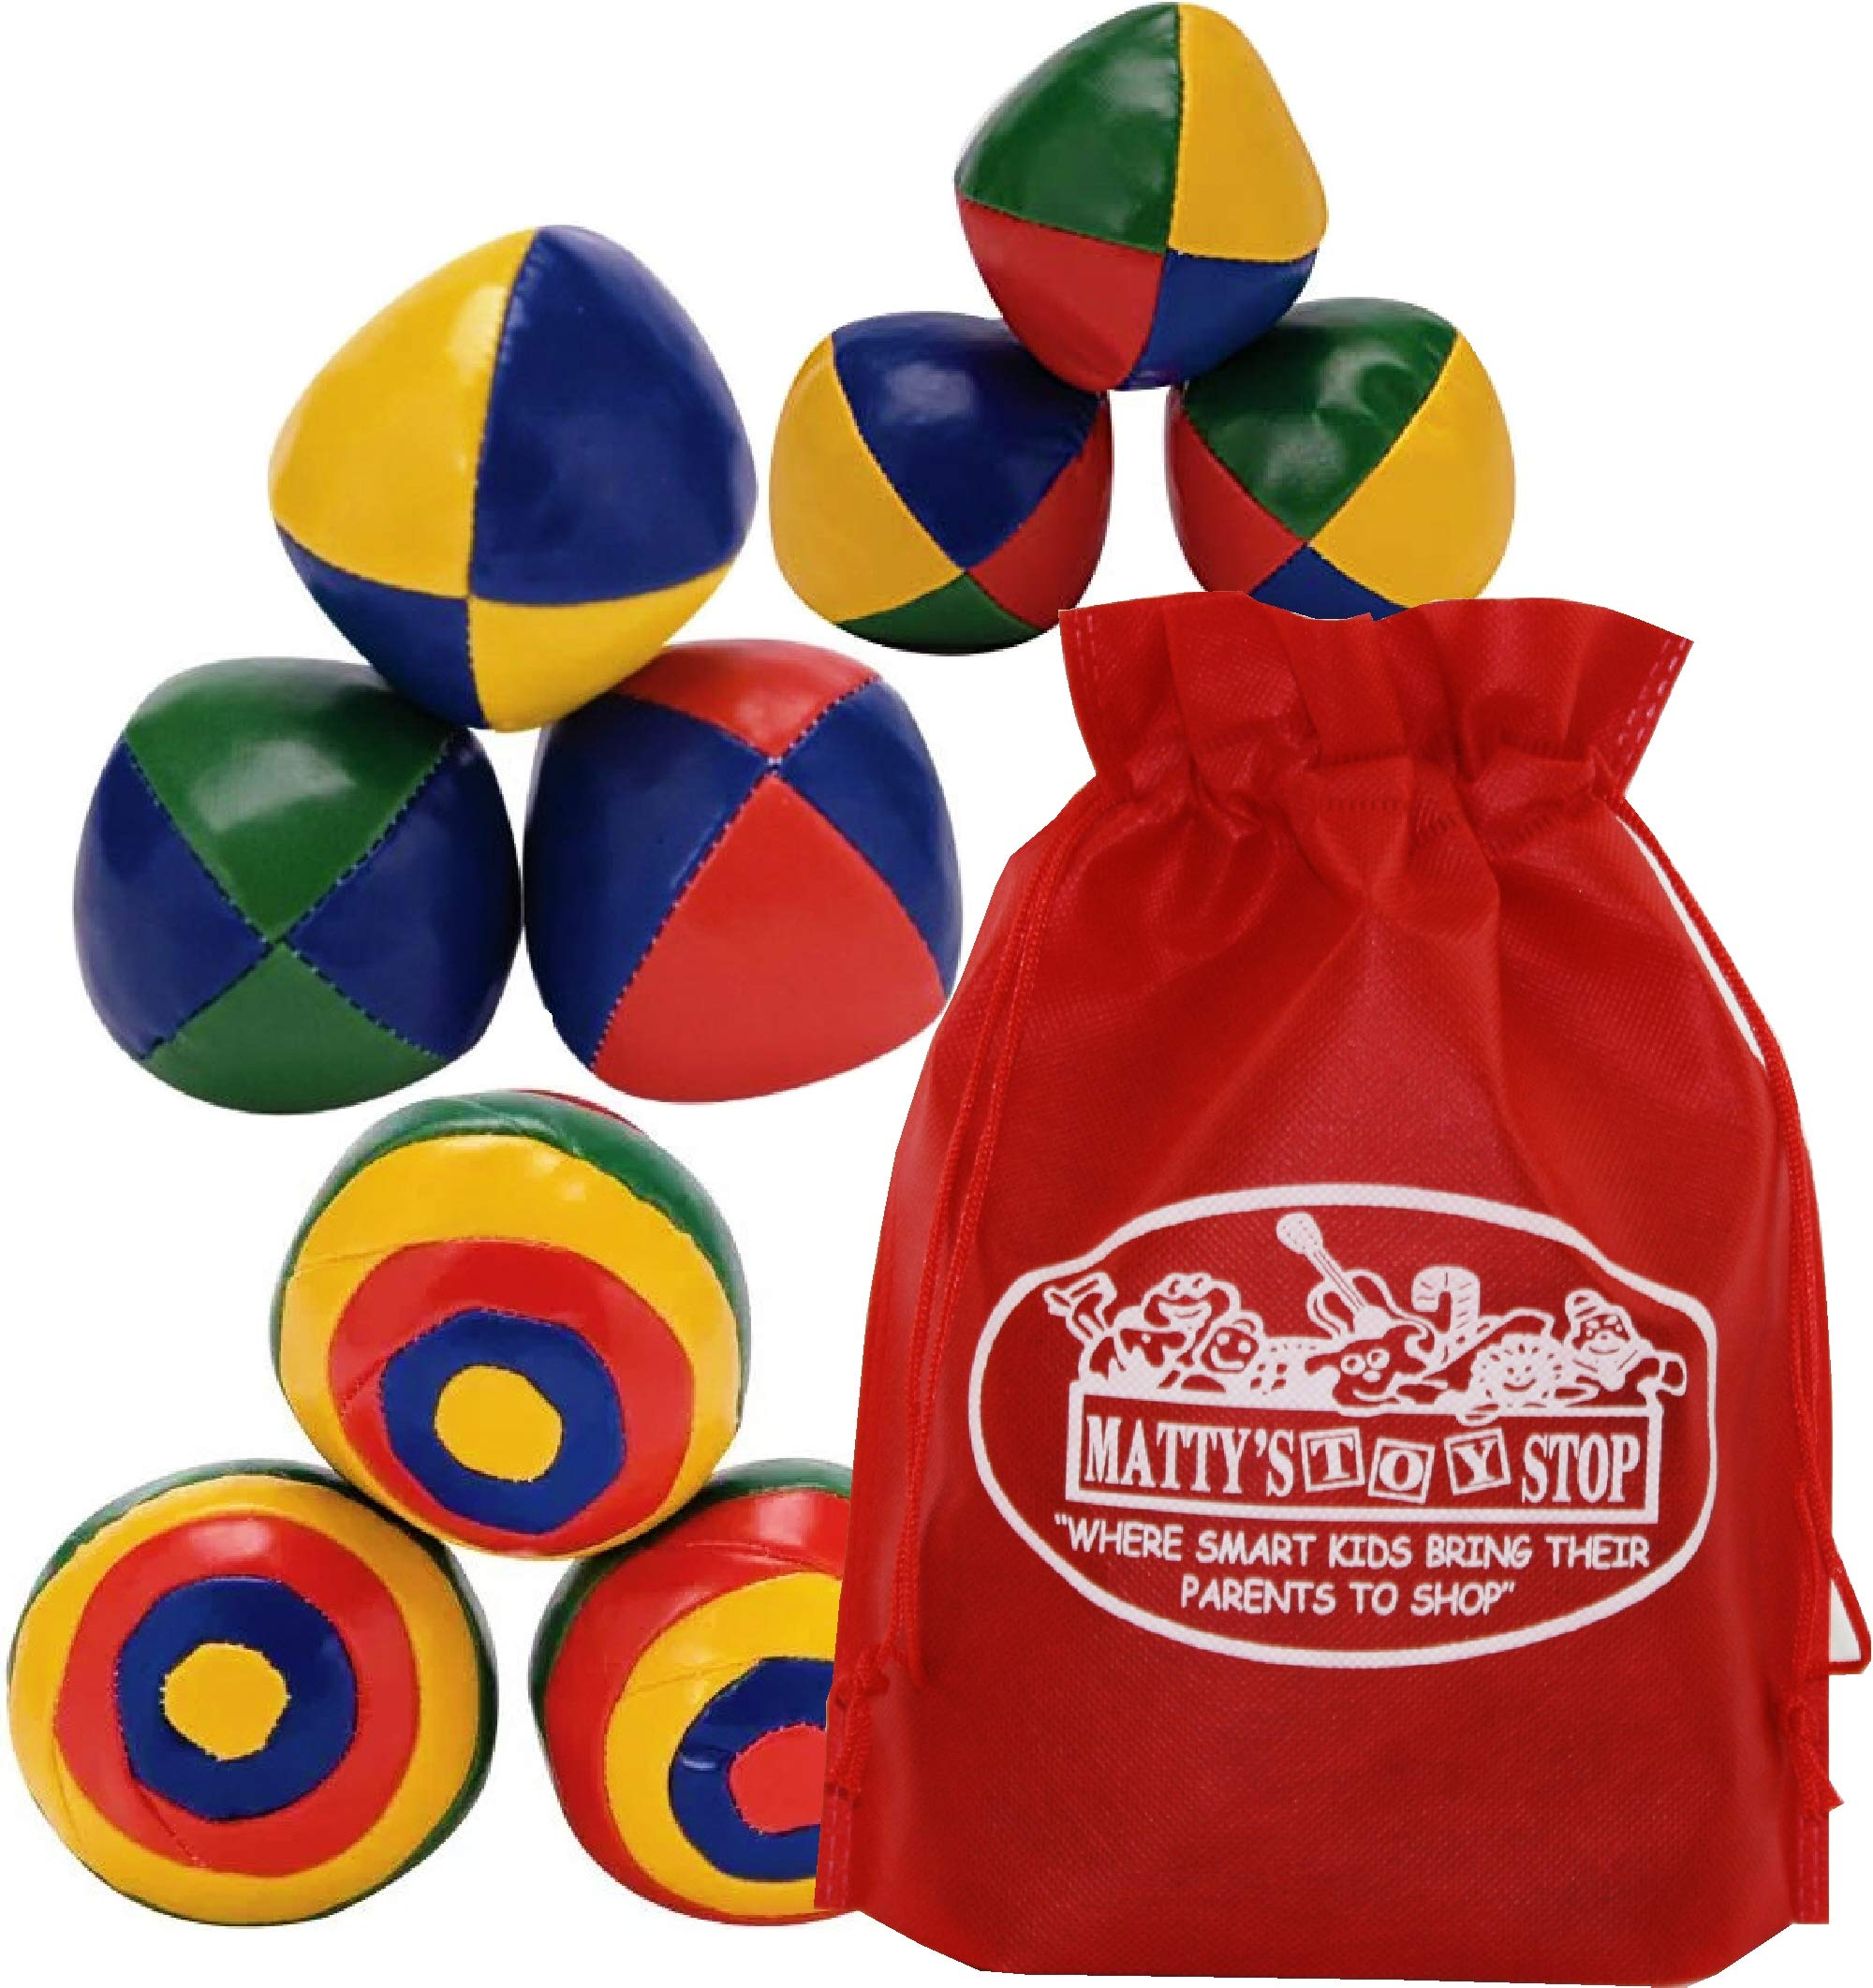 Schylling Ultimate Juggling Set with Classic Juggling Balls, Striped Juggling Balls & Mini Juggling Balls Gift Set Bundle with Bonus Matty's Toy Stop Storage Bag - 3 Pack by Schylling